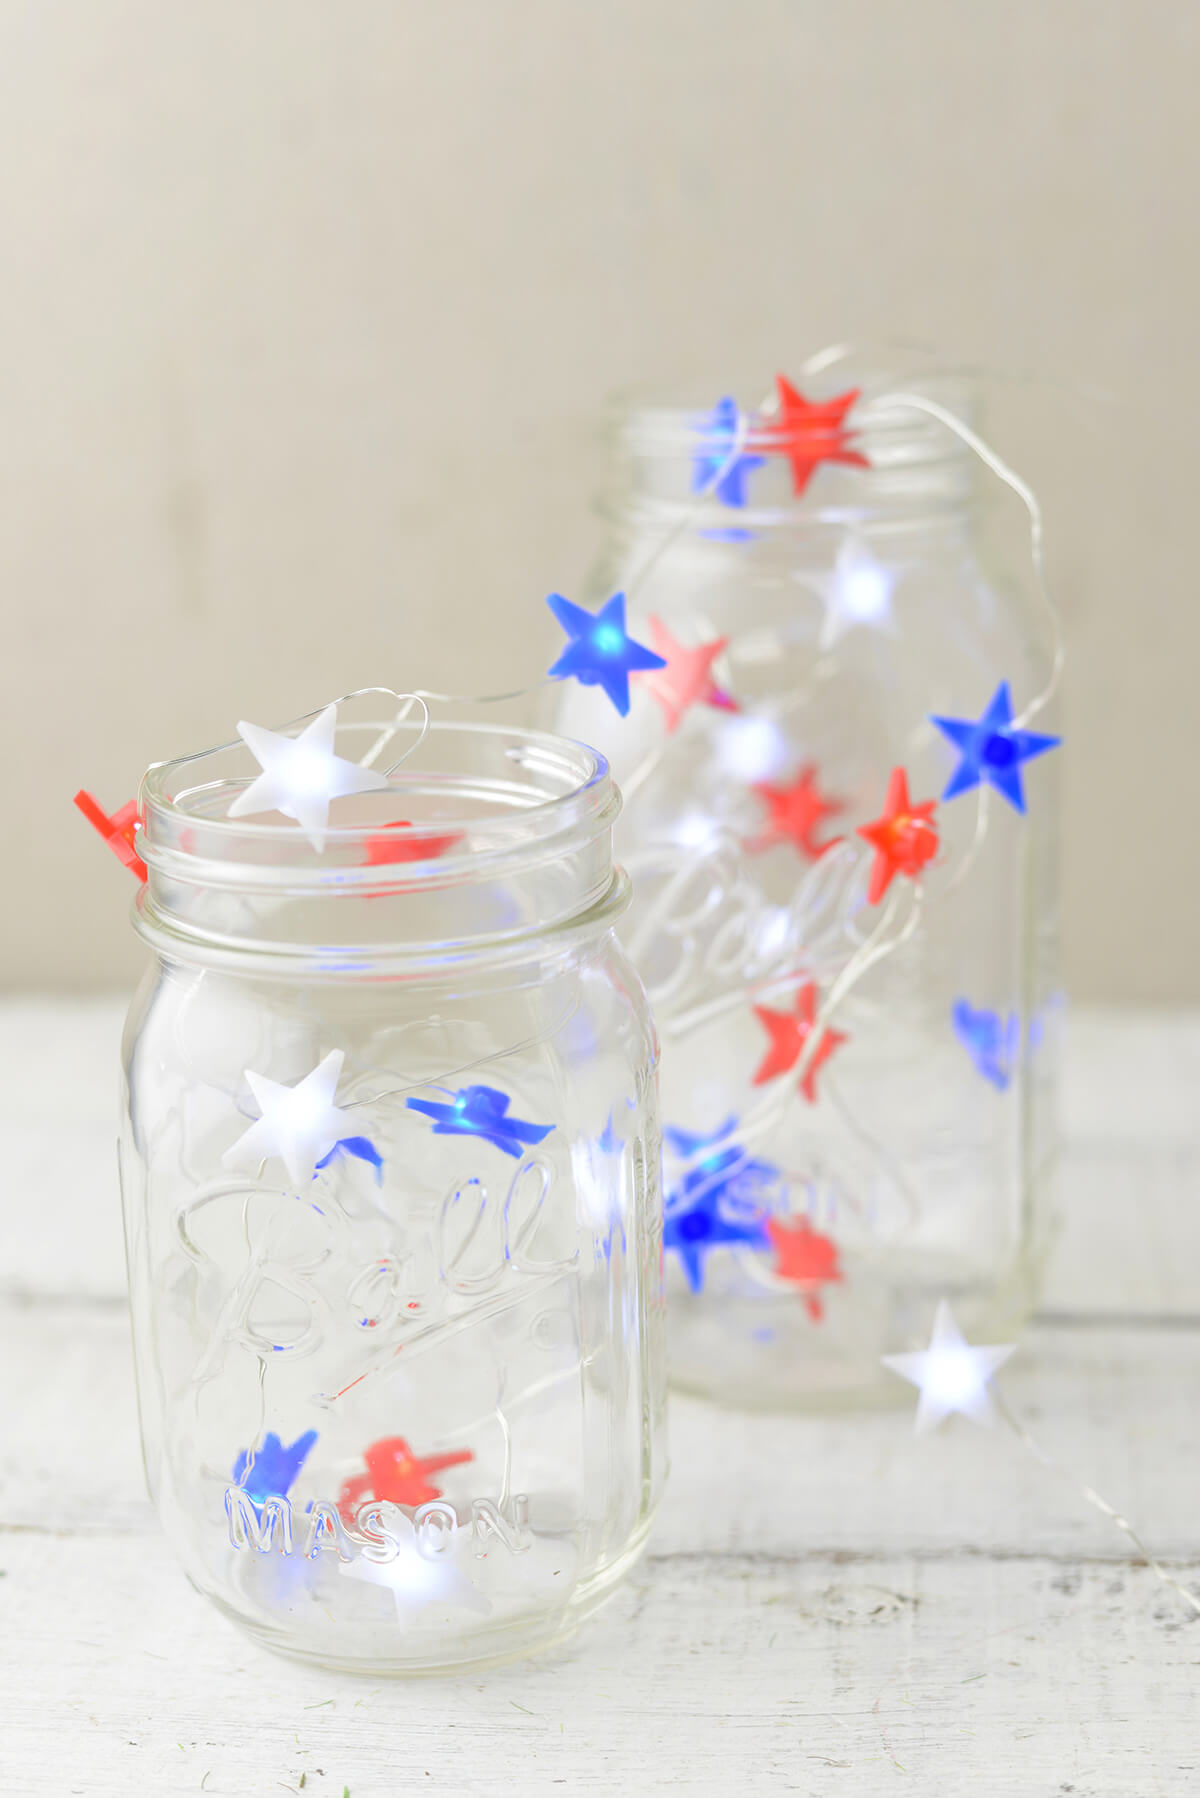 Mini Star String Lights : Everlasting Glow Red, White & Blue Star Shaped LED Mini String Lights , Battery Op, 30 LED, 9 Ft